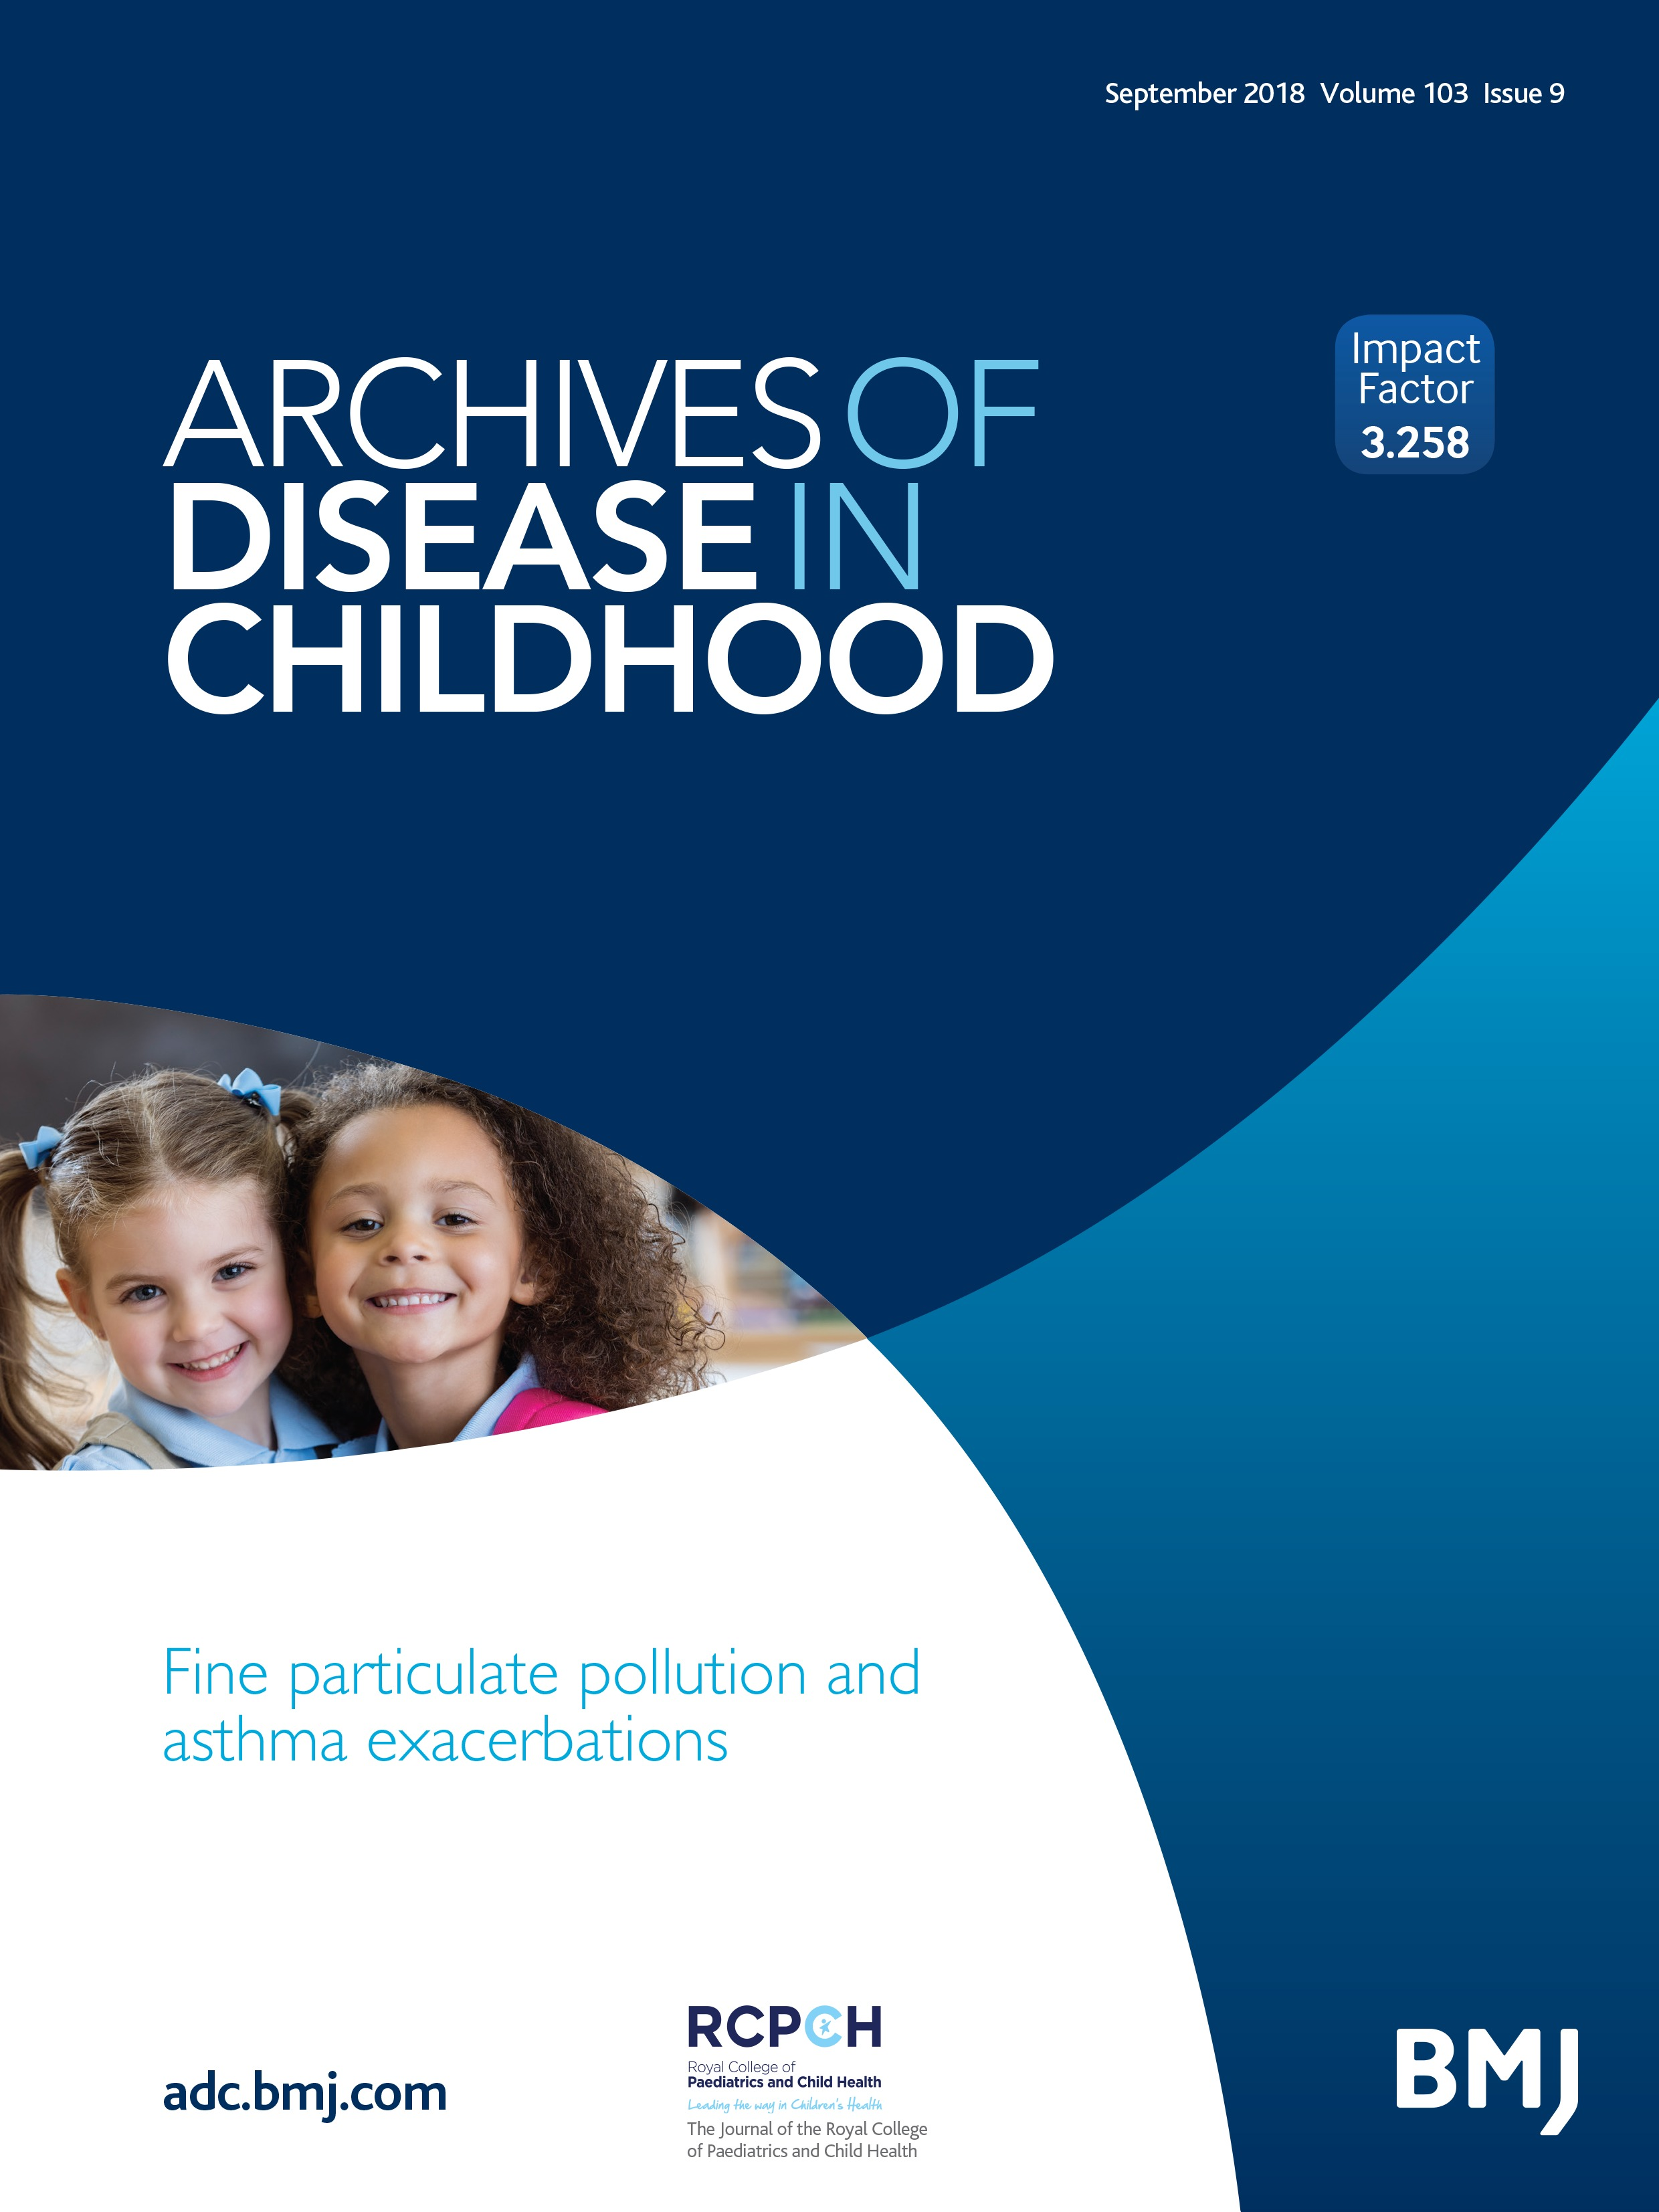 Fine particulate pollution and asthma exacerbations | Archives of